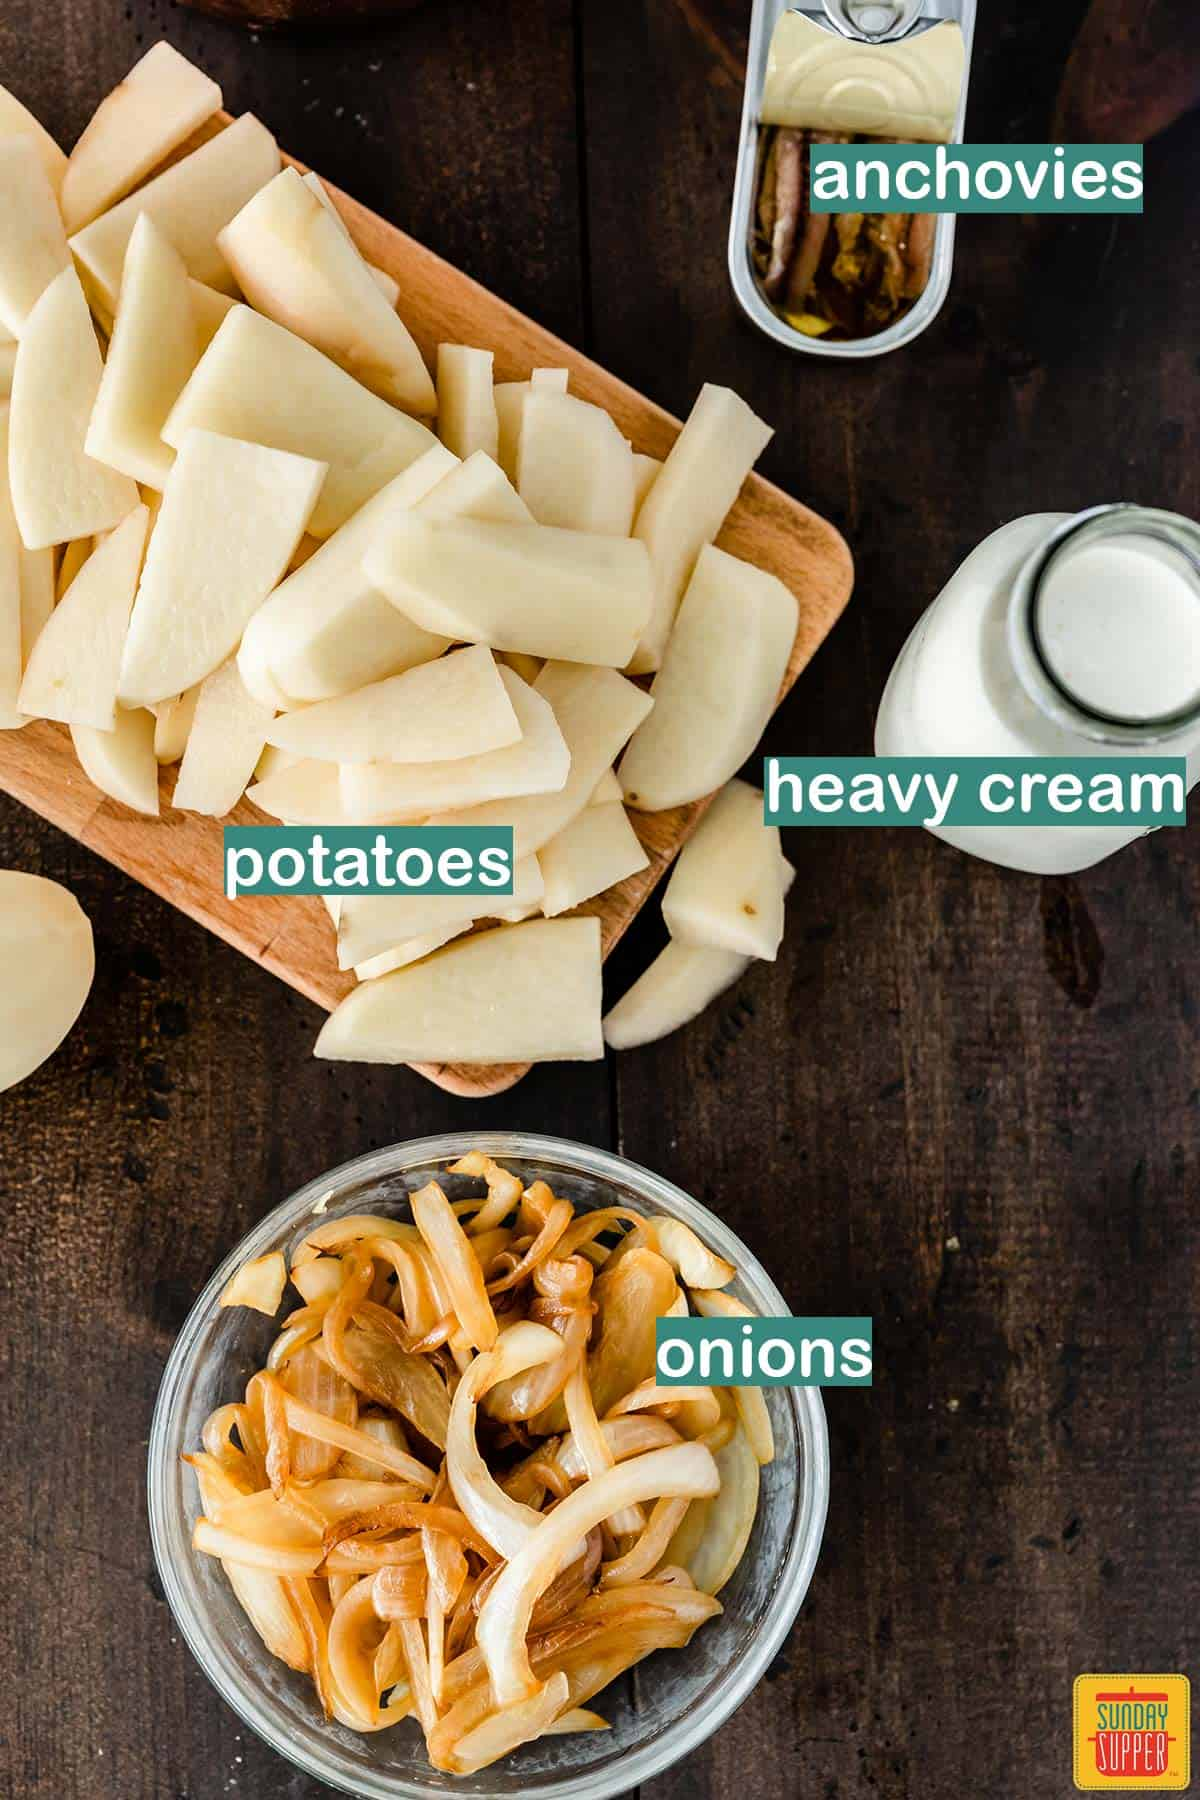 Ingredients to make Jansson's Frestelse labeled on a table